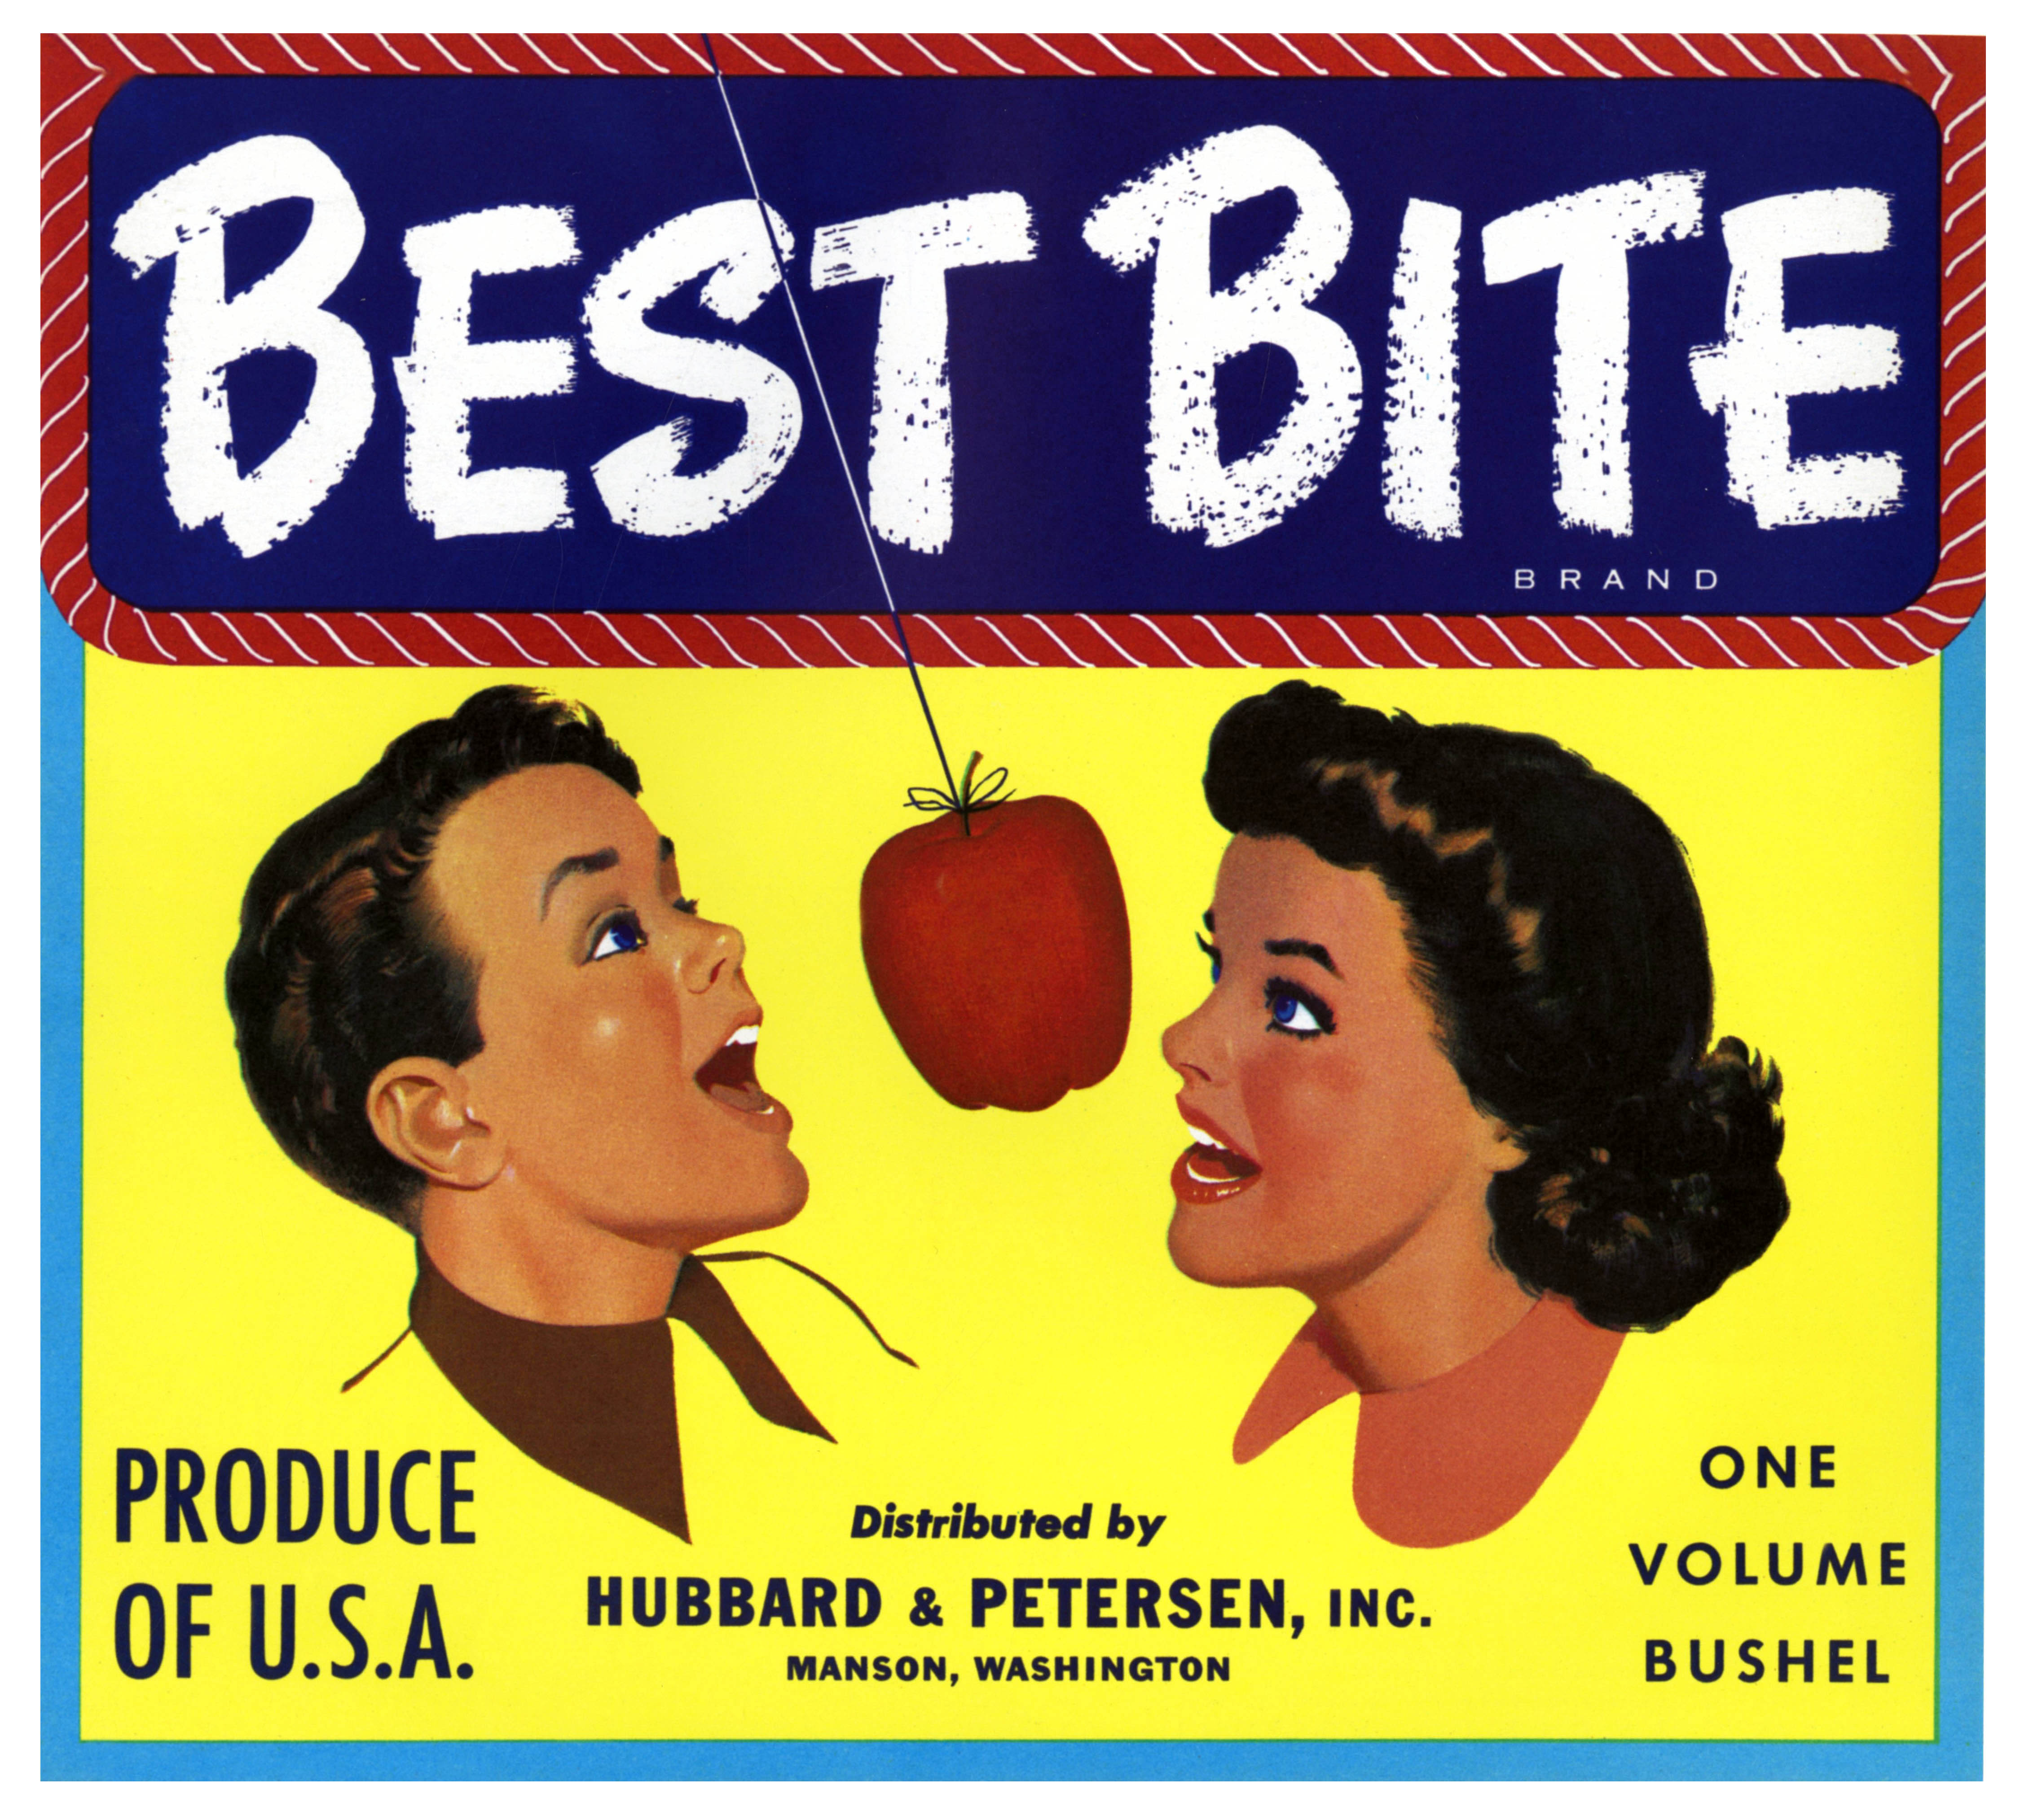 Best Bite crate label - Hubbard and Petersen, Inc. - Manson, Washington U.S.A. - date unknown